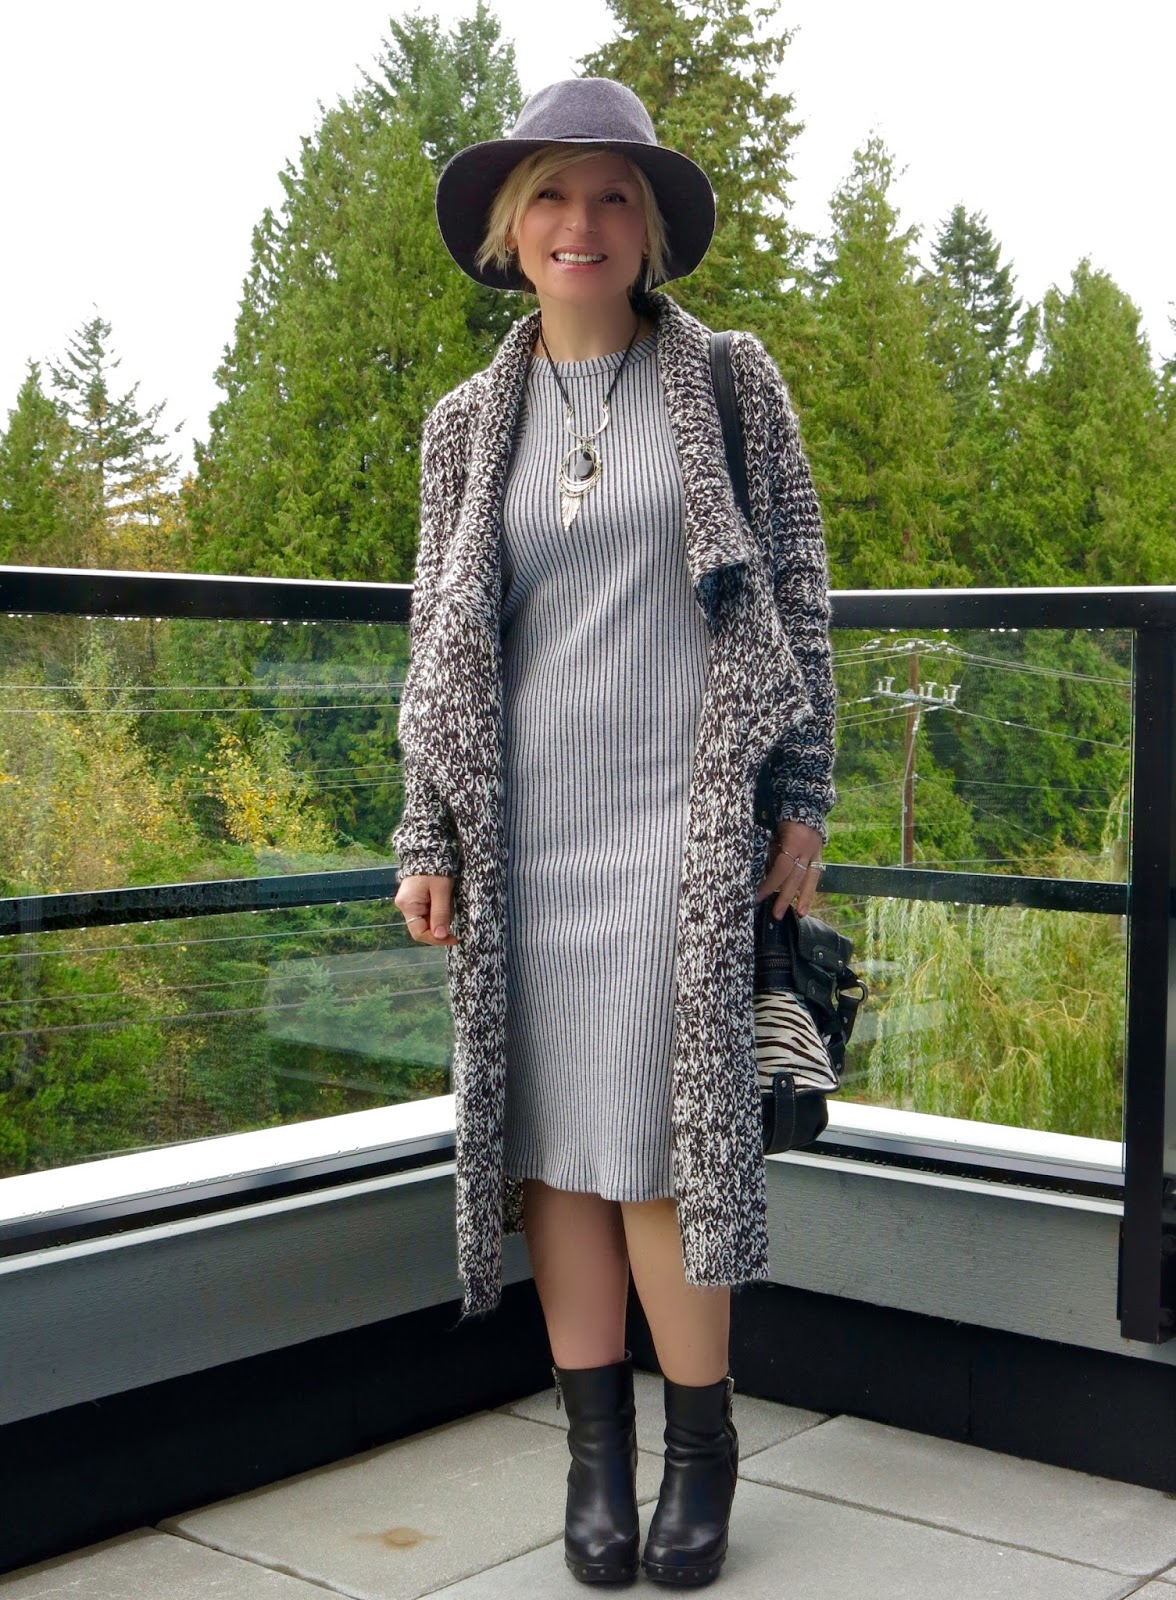 styling a sweater coat with a tank dress, booties, and floppy hat